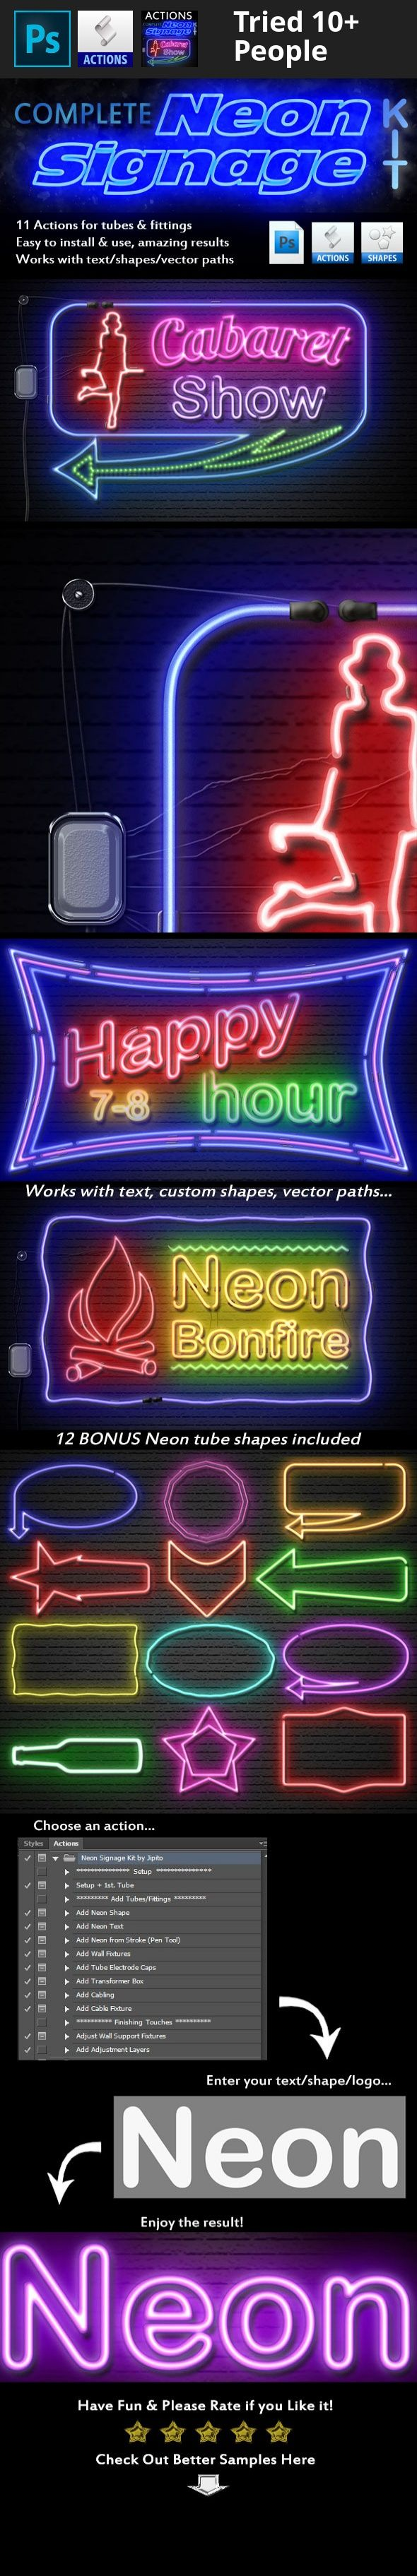 3d, action, add on, bright, bulb, casino, clean, creator, depth, distort, easy, effect, electric, glow, glowing, lamp, light, lighted, lit, logo, marquee, neon, shadow, shape, shine, sign, signage, text, vector, vintage Create a complete Neon Sign using as many shapes and/texts as you need. You can add cables, a transformer & wall fittings, as well as neon tubes created from text, shapes or strokes. You also have complete control over the neon colours.   Features:  11 actions for creat...